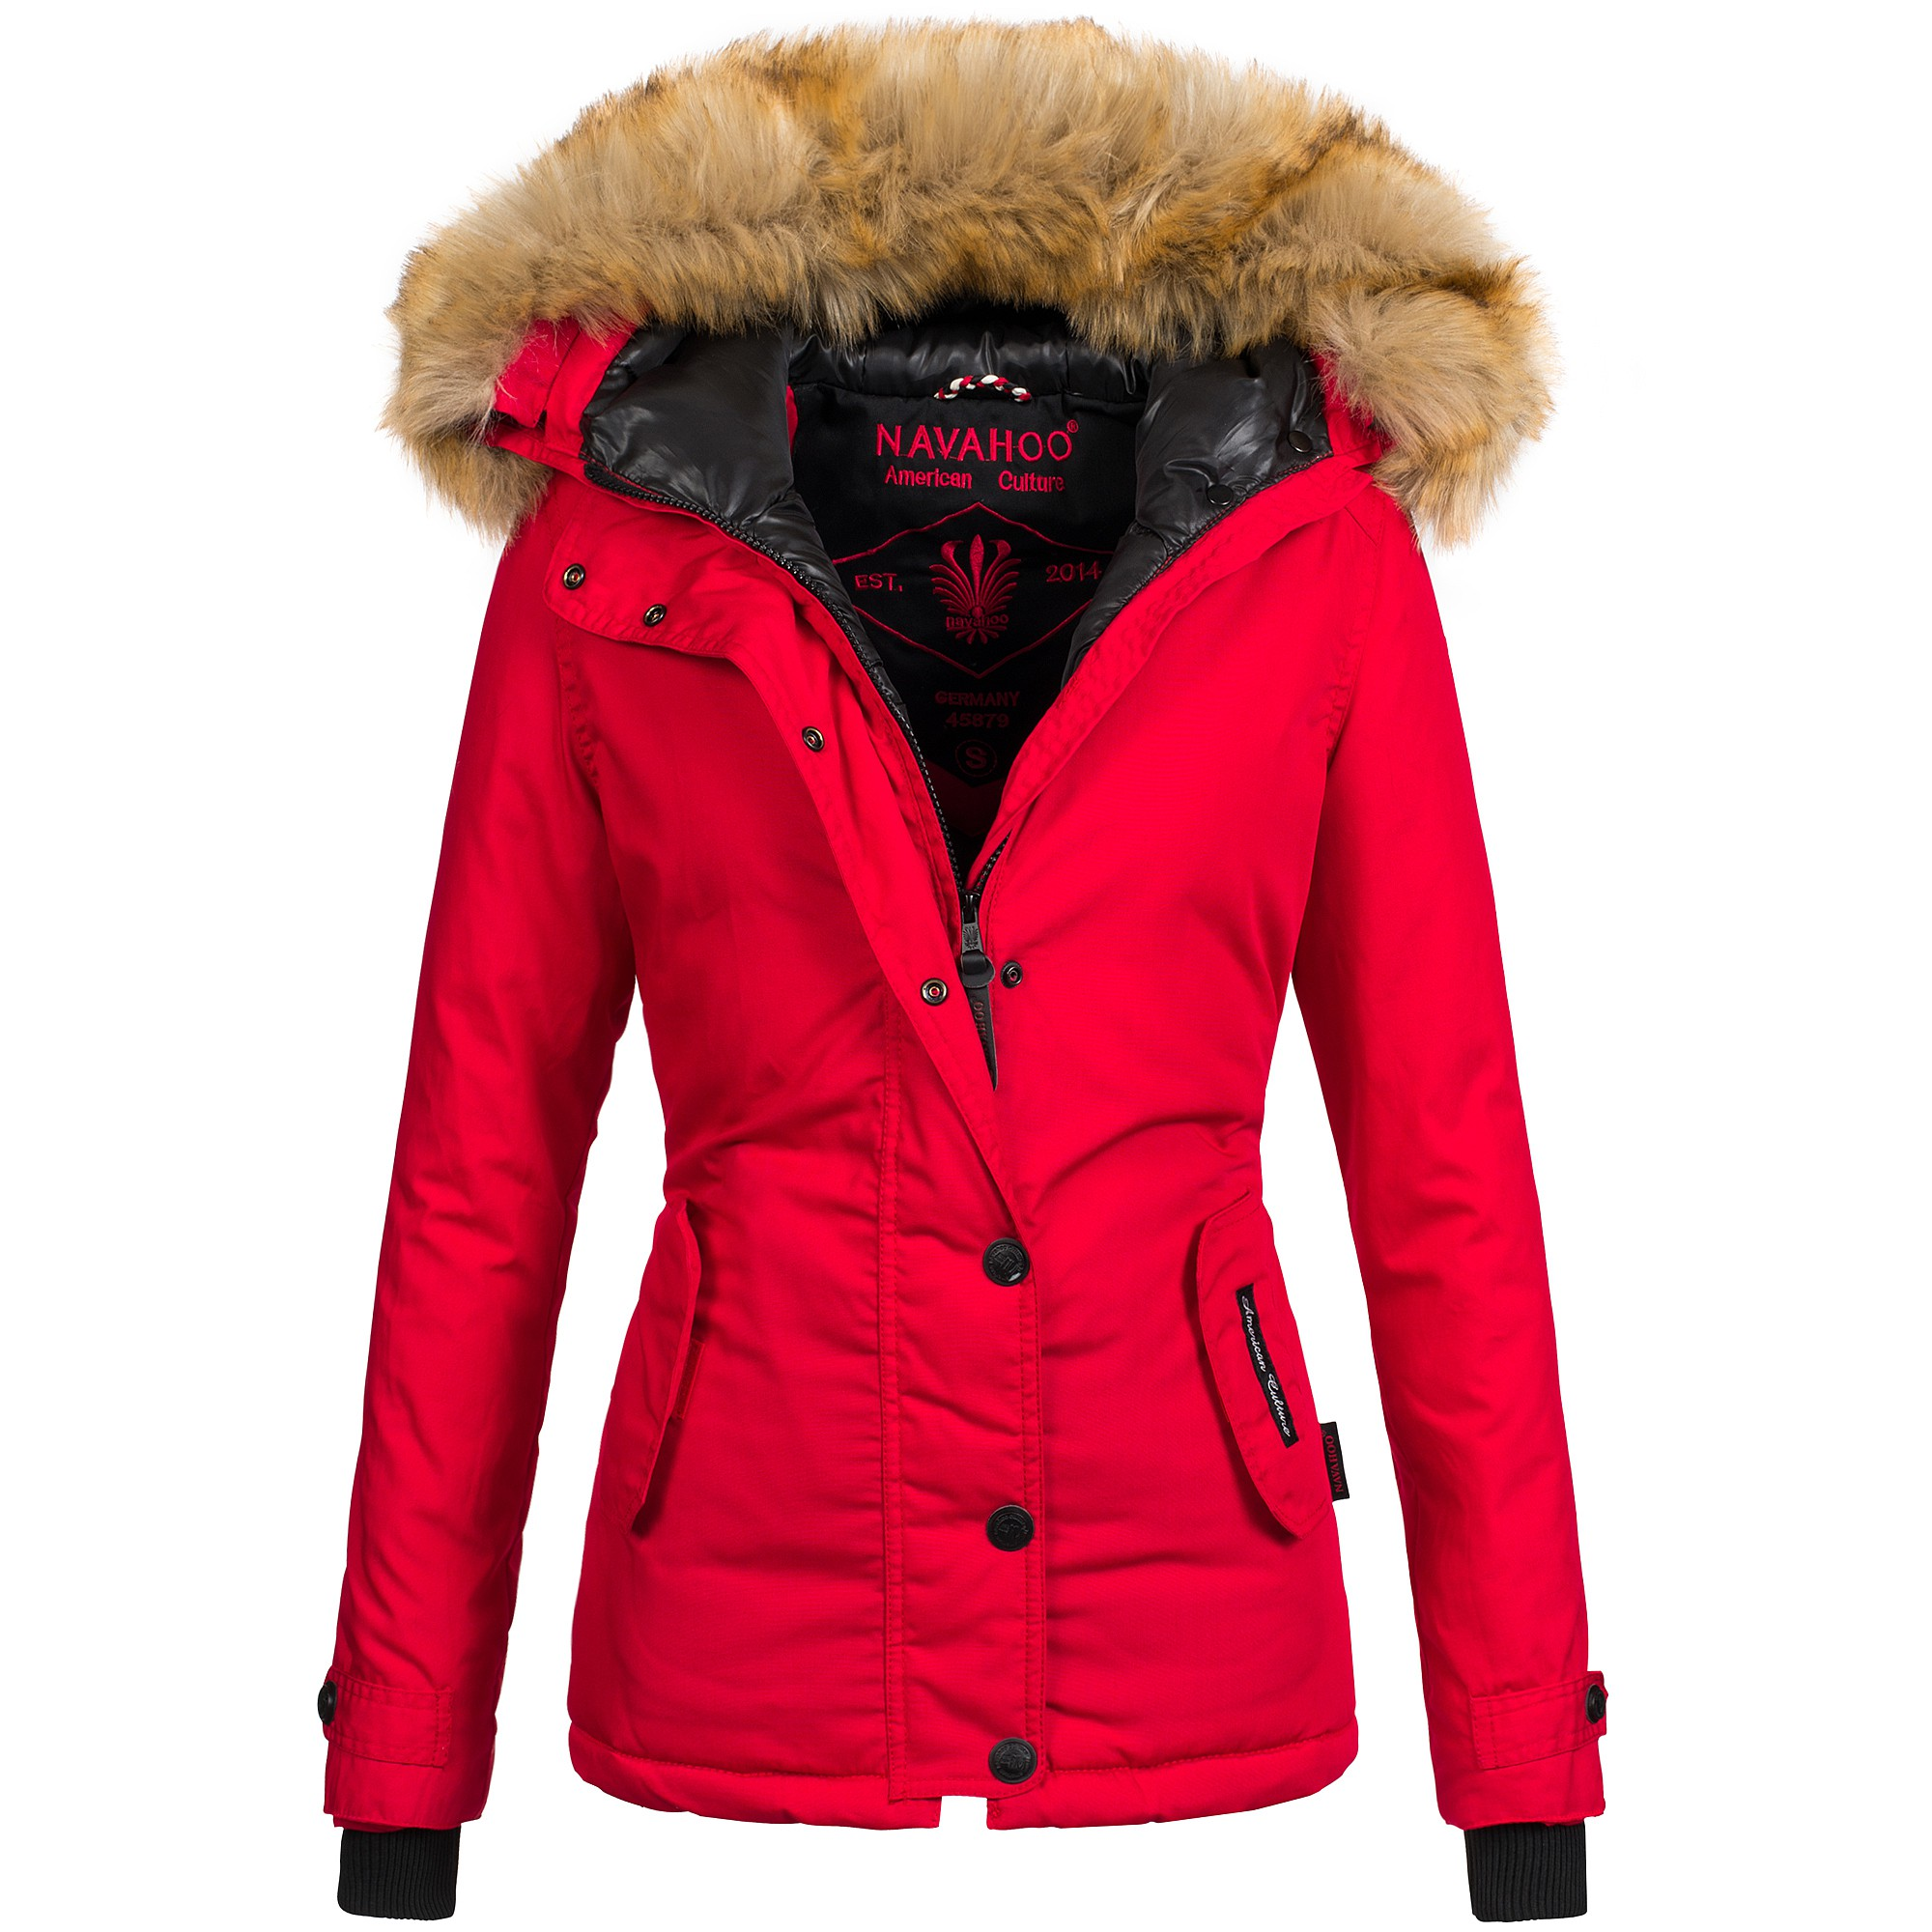 navahoo laura2 damen jacke parka mantel winterjacke rot gr. Black Bedroom Furniture Sets. Home Design Ideas